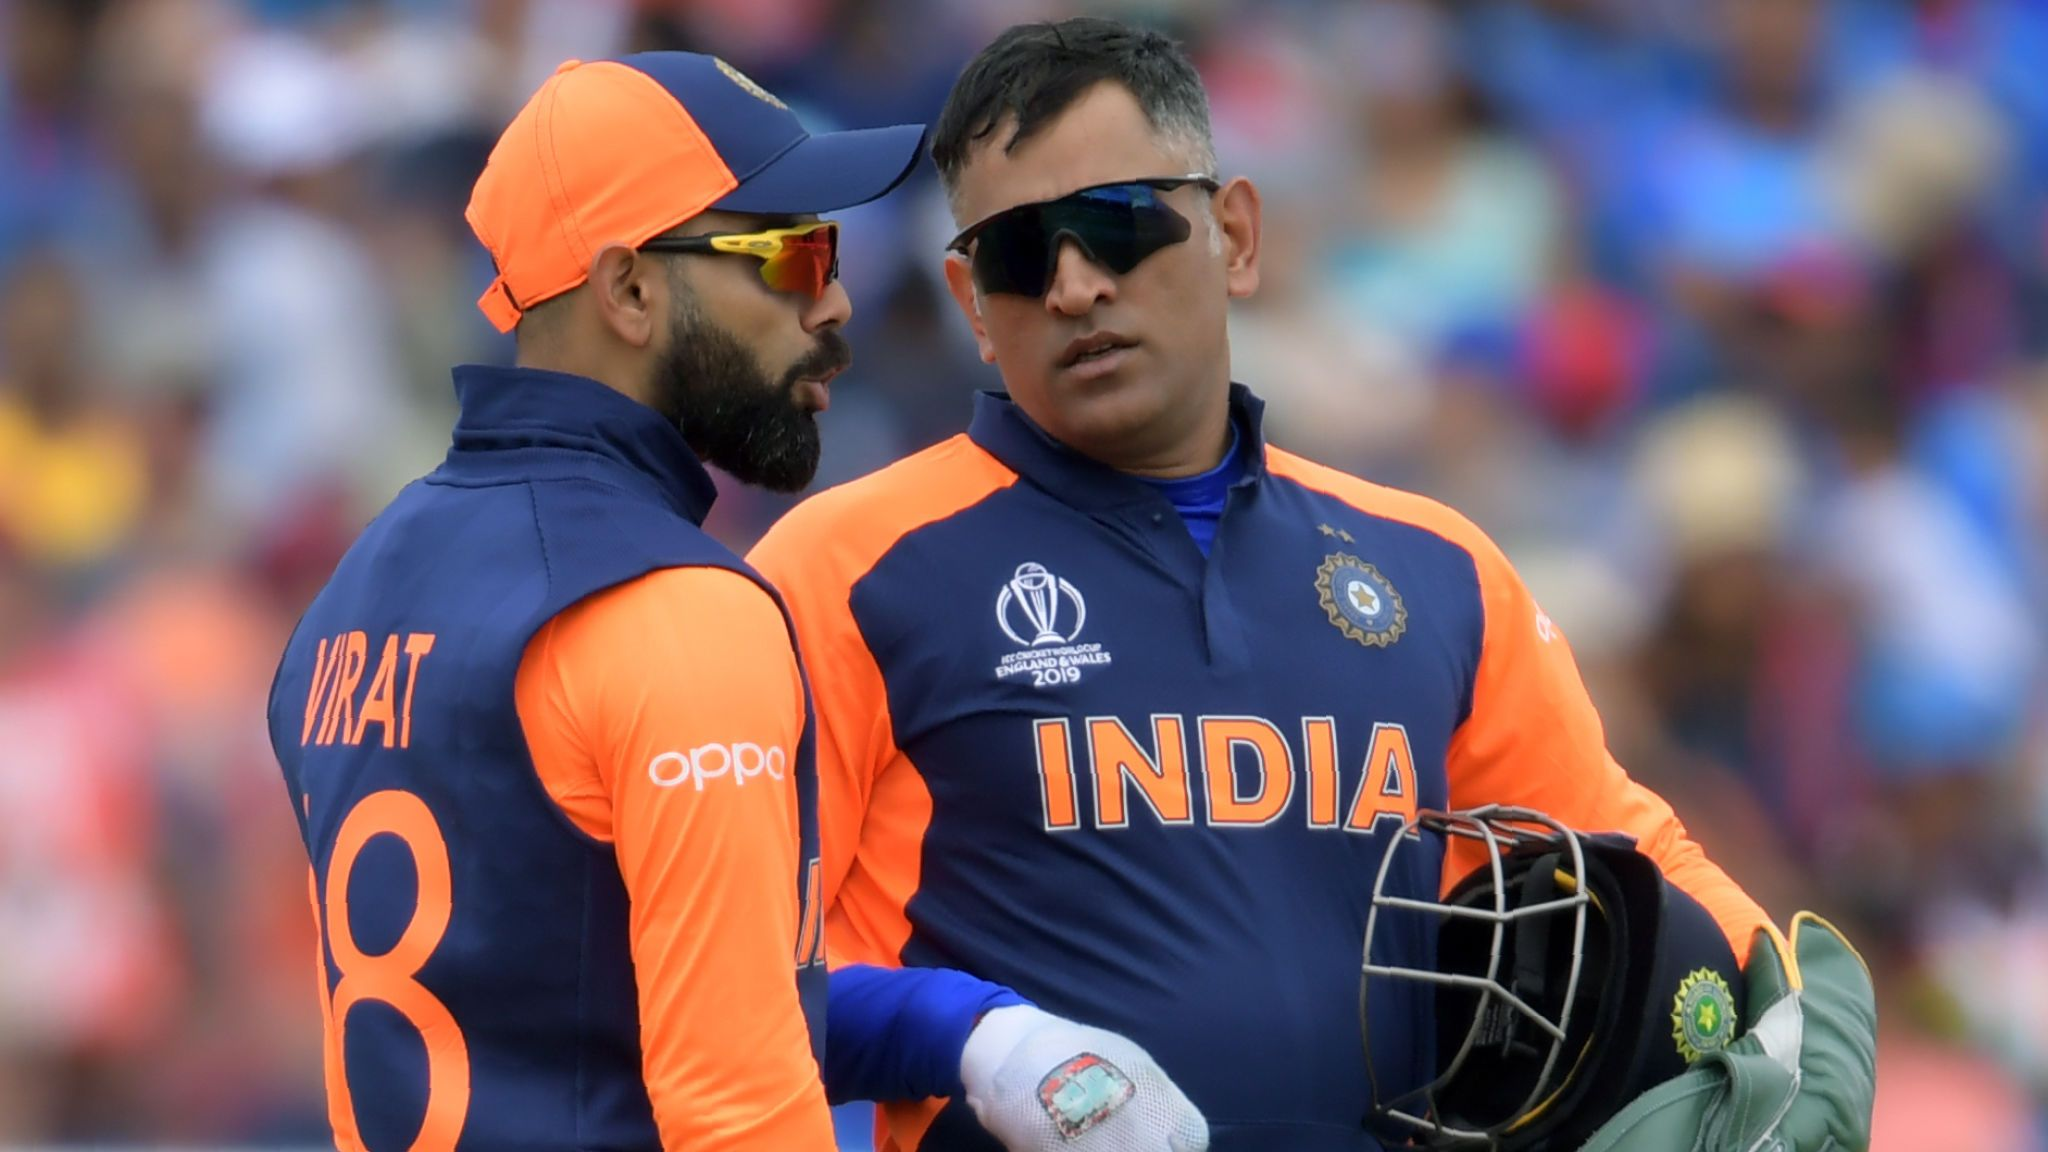 Virat And Dhoni Wallpapers Wallpaper Cave